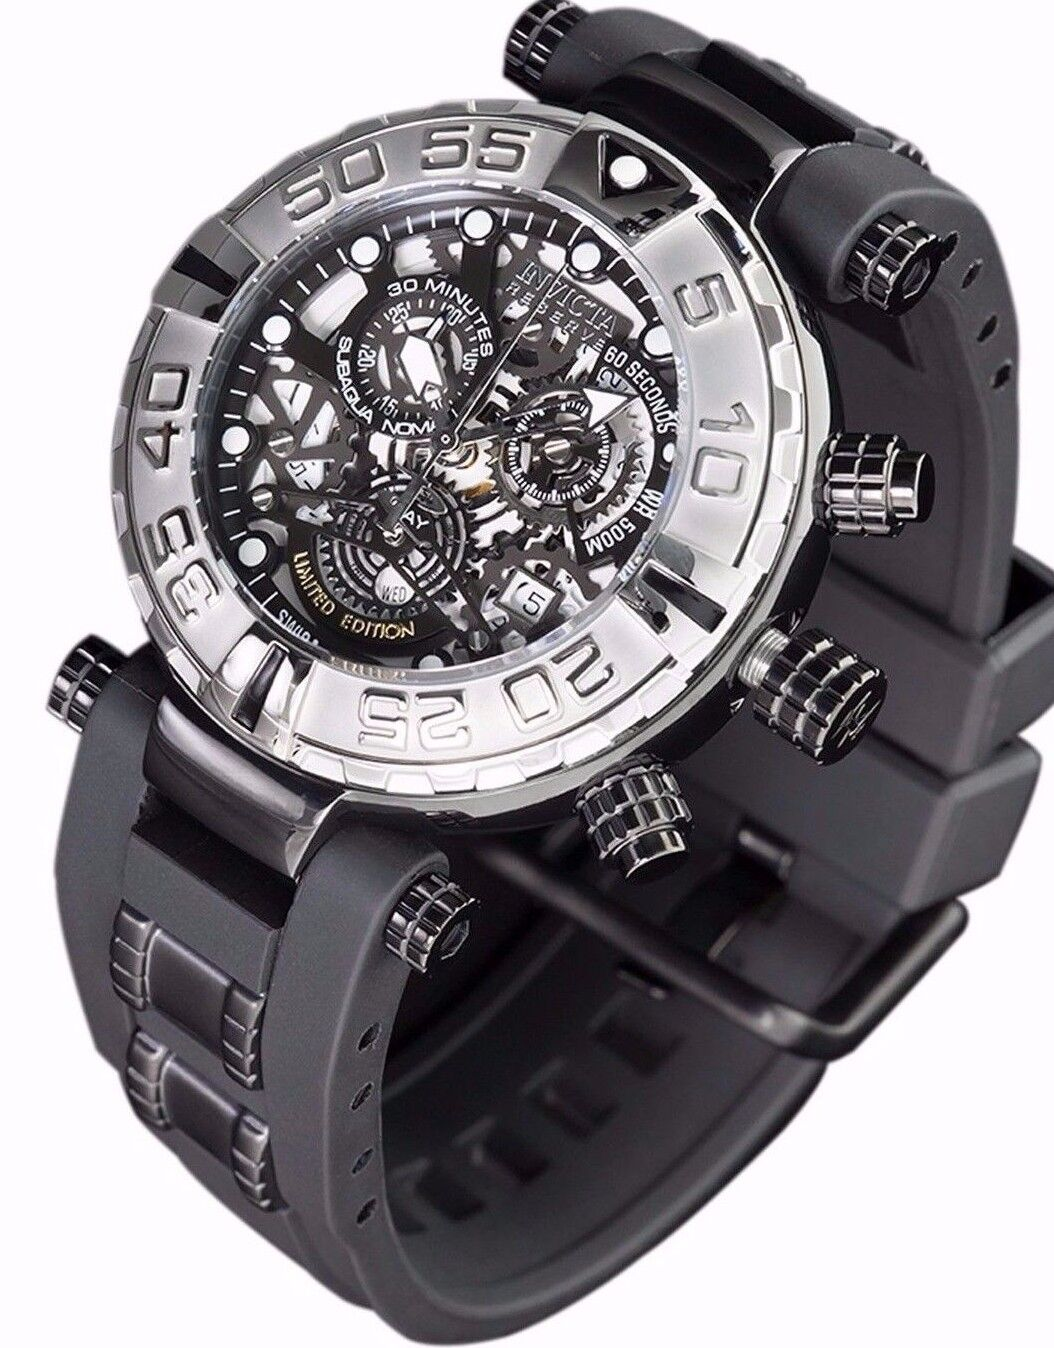 $194.99 - New Mens Invicta Subaqua Swiss Made Chronograph Skeleton Black Dial Watch